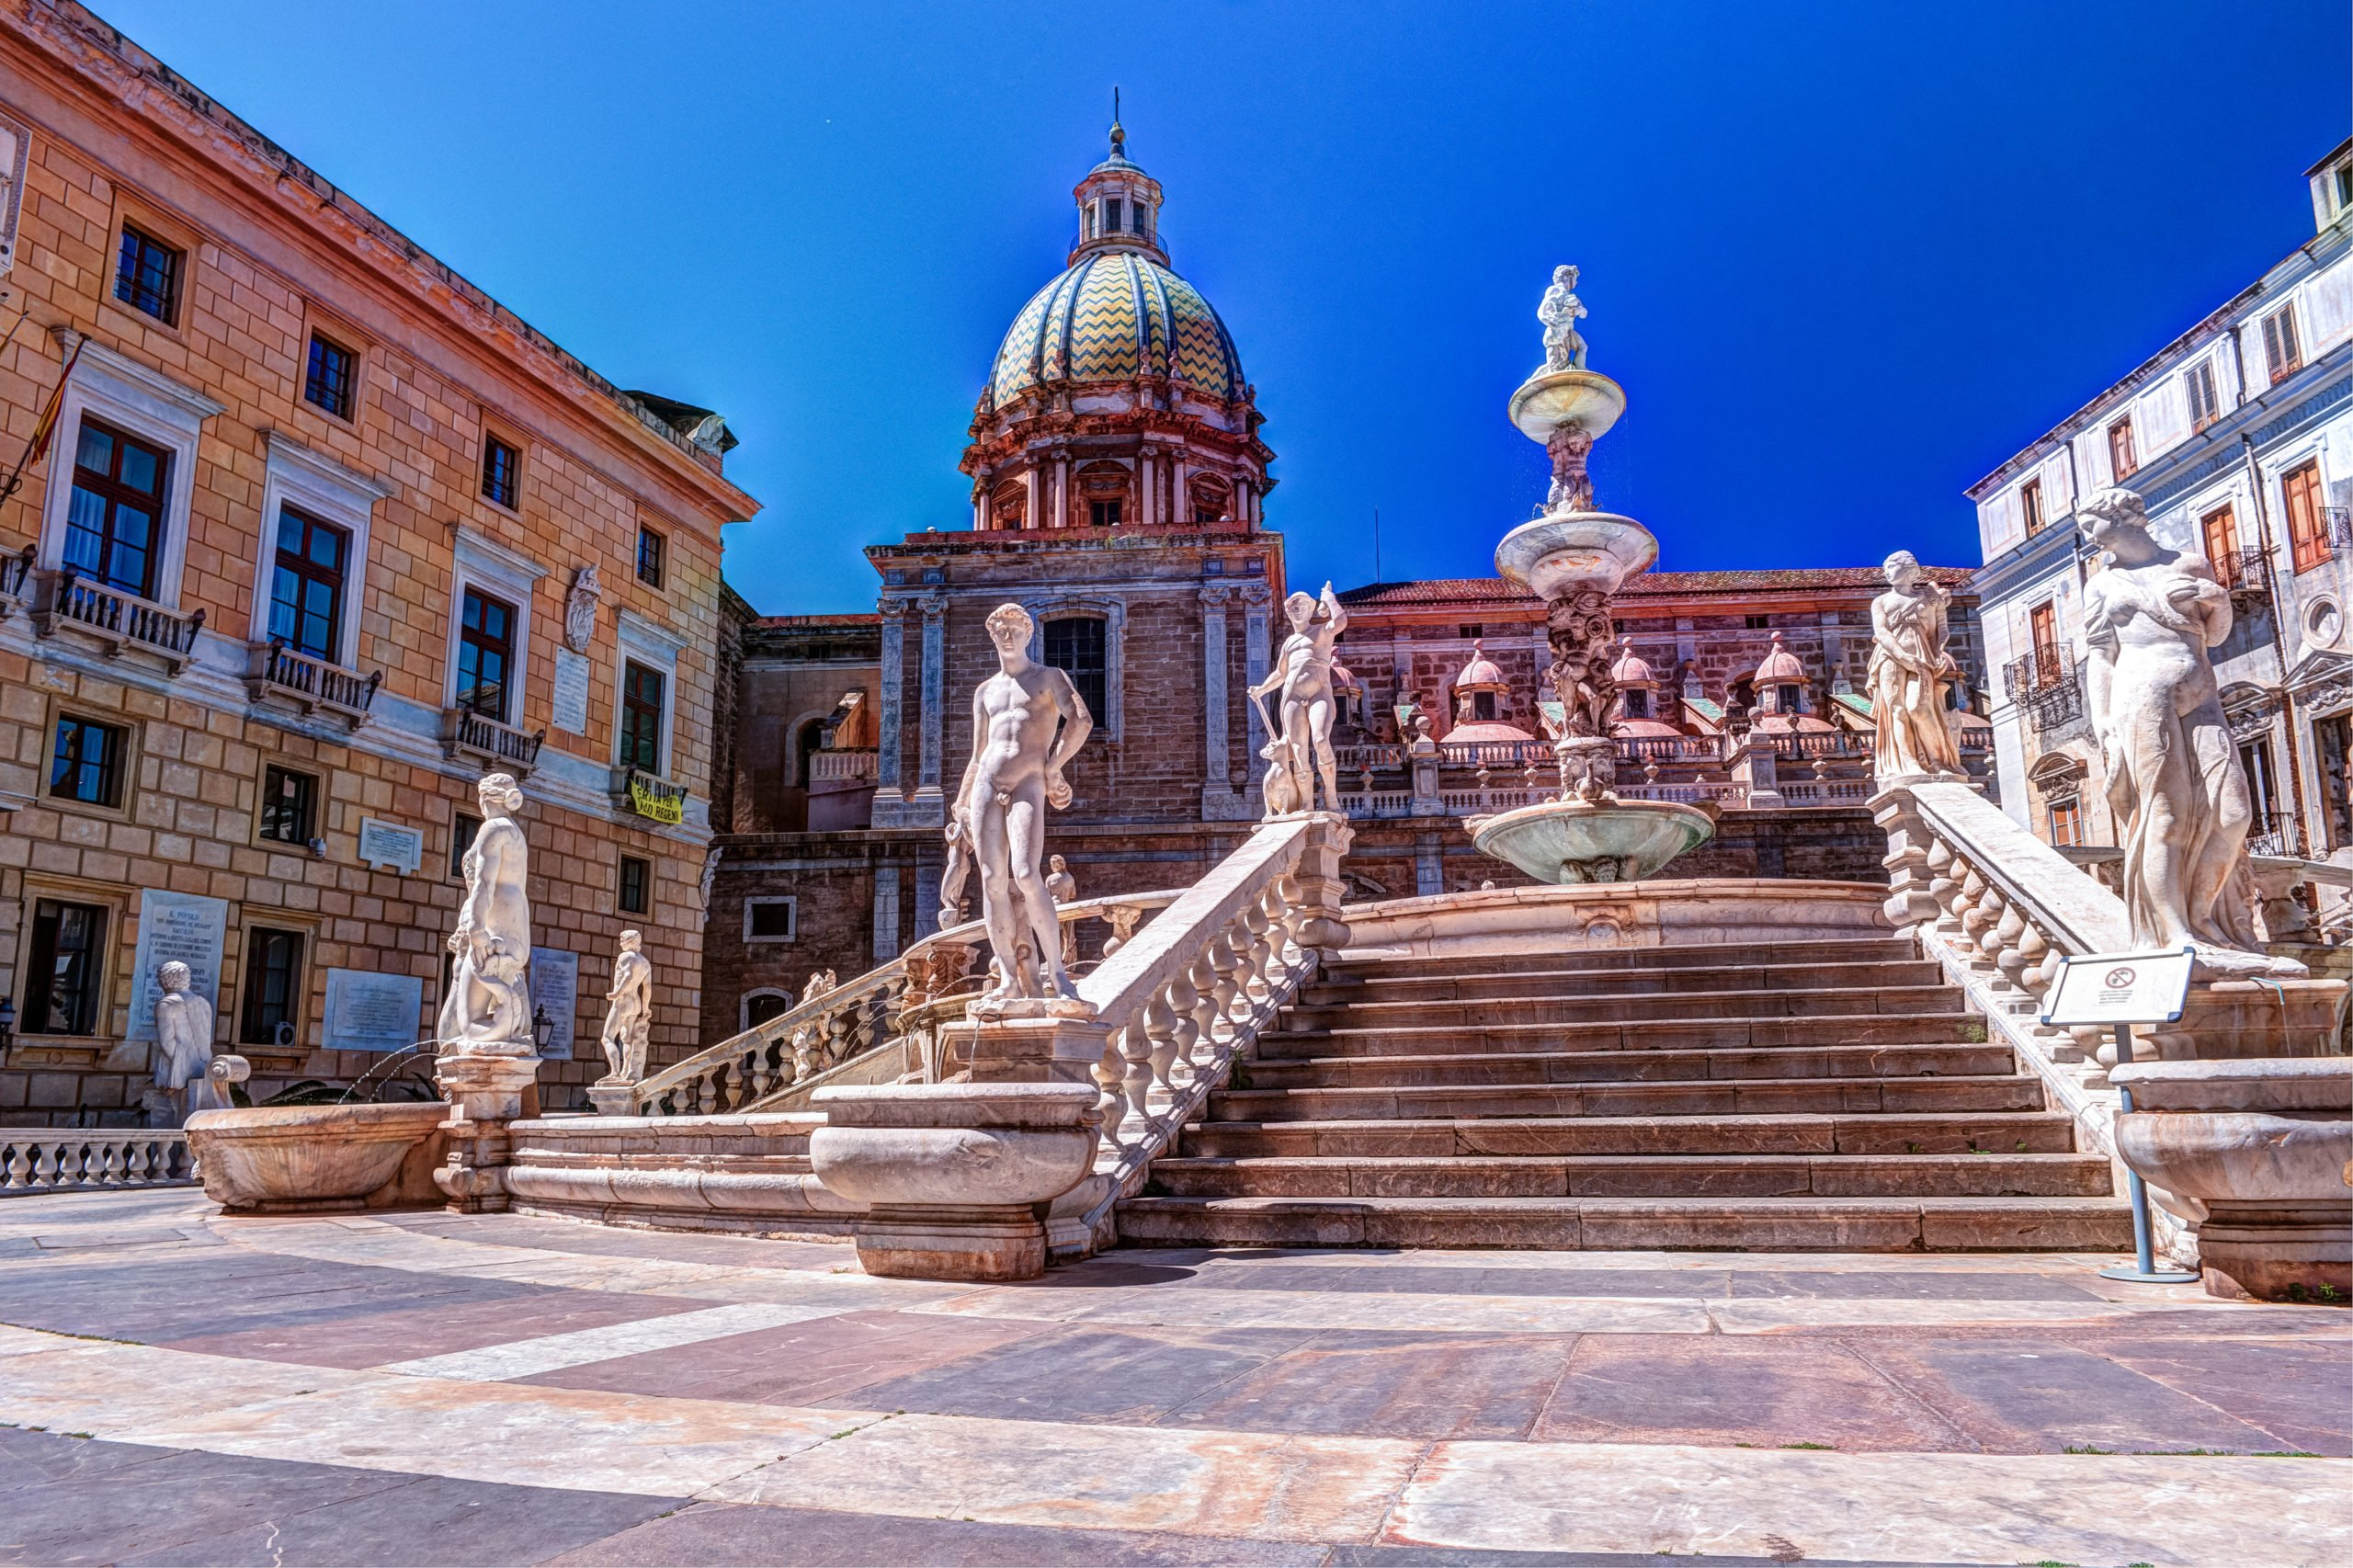 Discover The City Of Palermo On Our Palermo Street Food Evening Tour